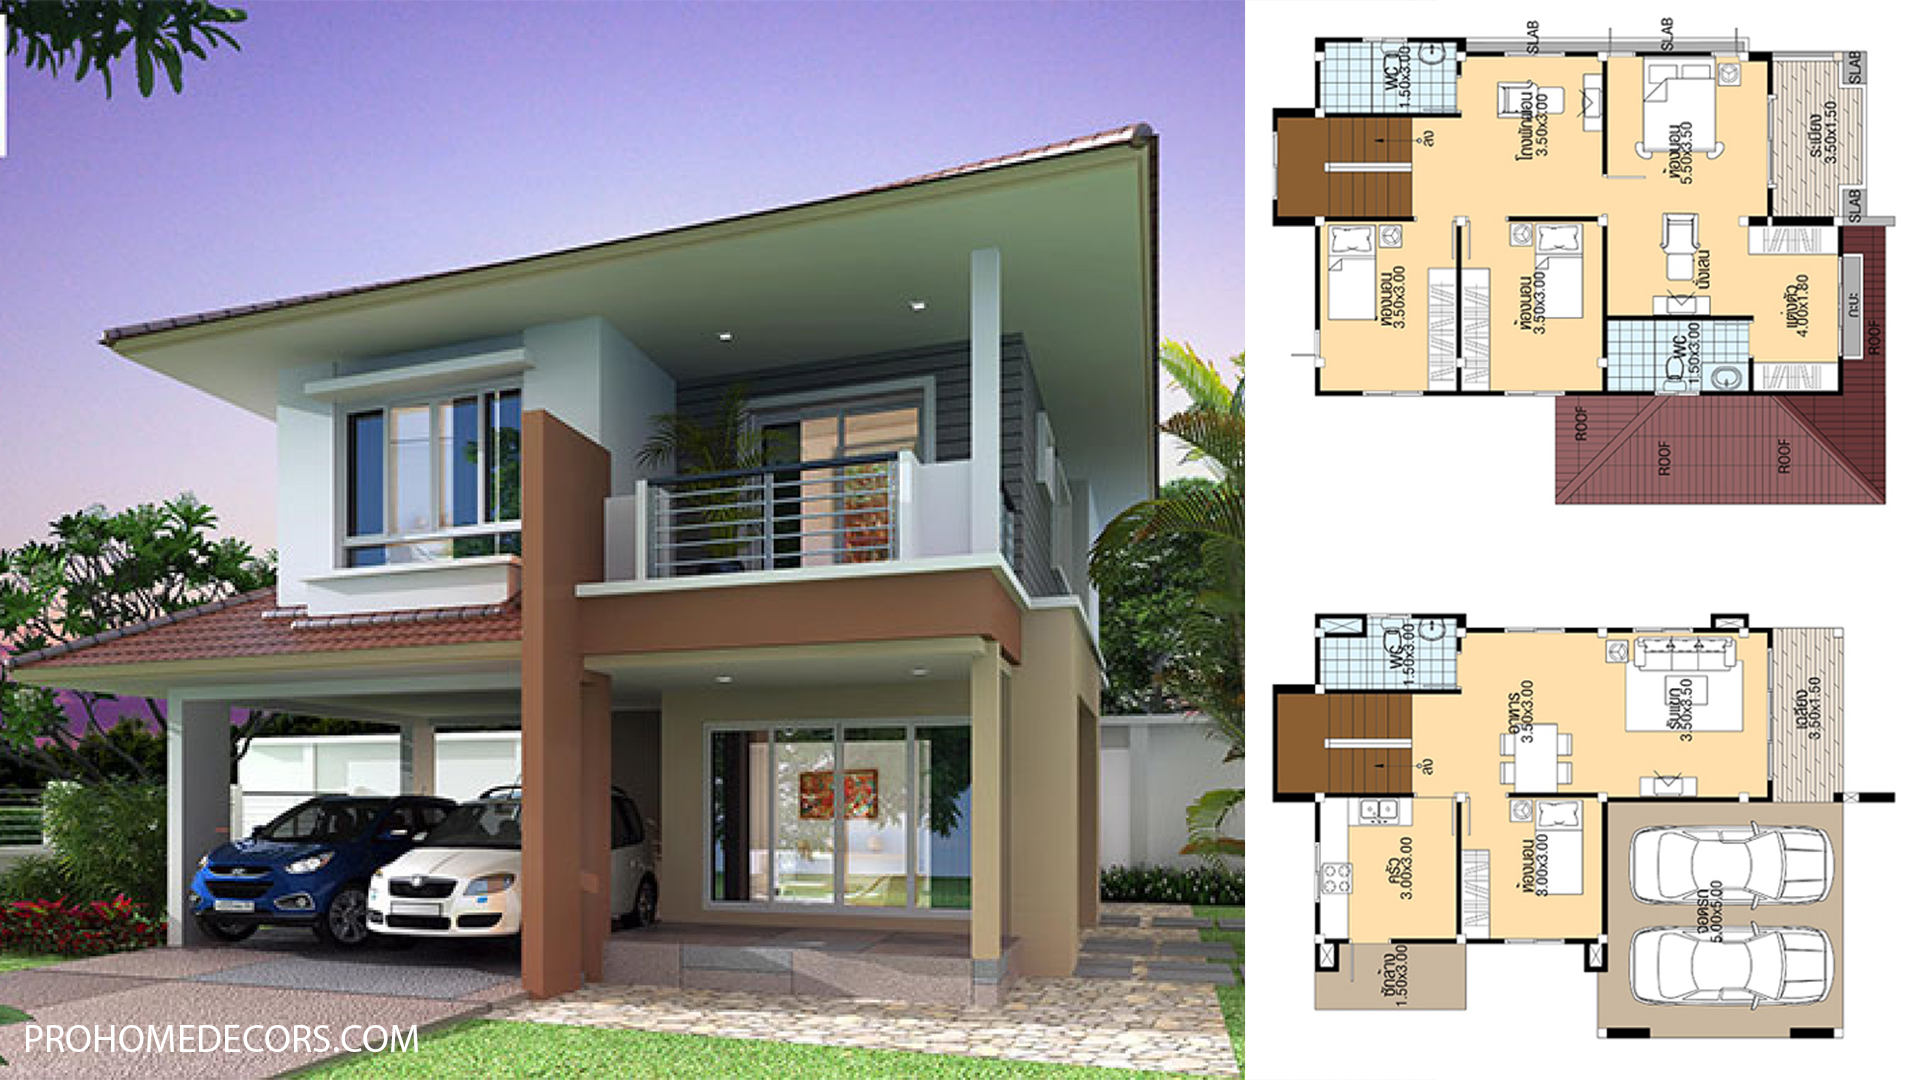 Small House Design 8.5x11 with 4 bedrooms